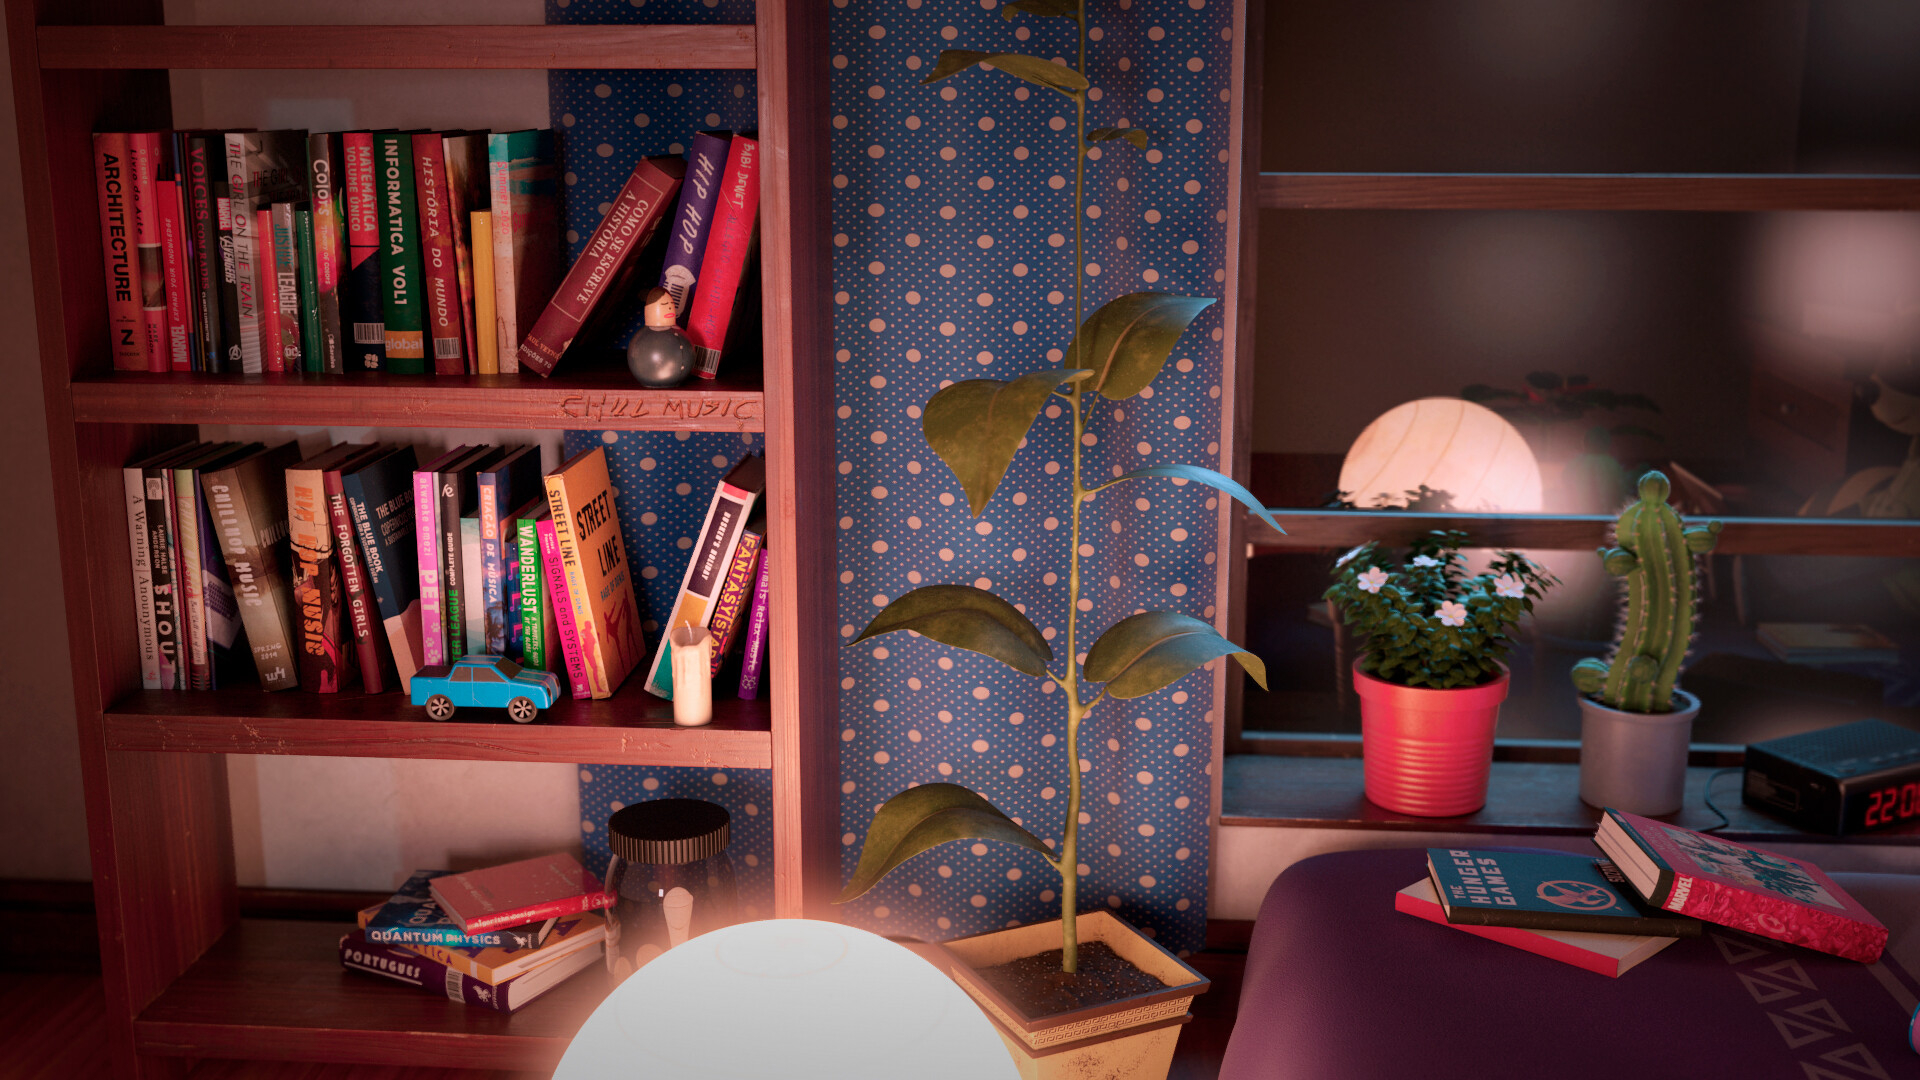 Chillhop Music On Twitter Cgi Student Danilo Rodrigues Has Created A 3d Version Of Our Favorite Bedroom Find More Here Https T Co Il102jk0iz Https T Co F6dgr3fx3c